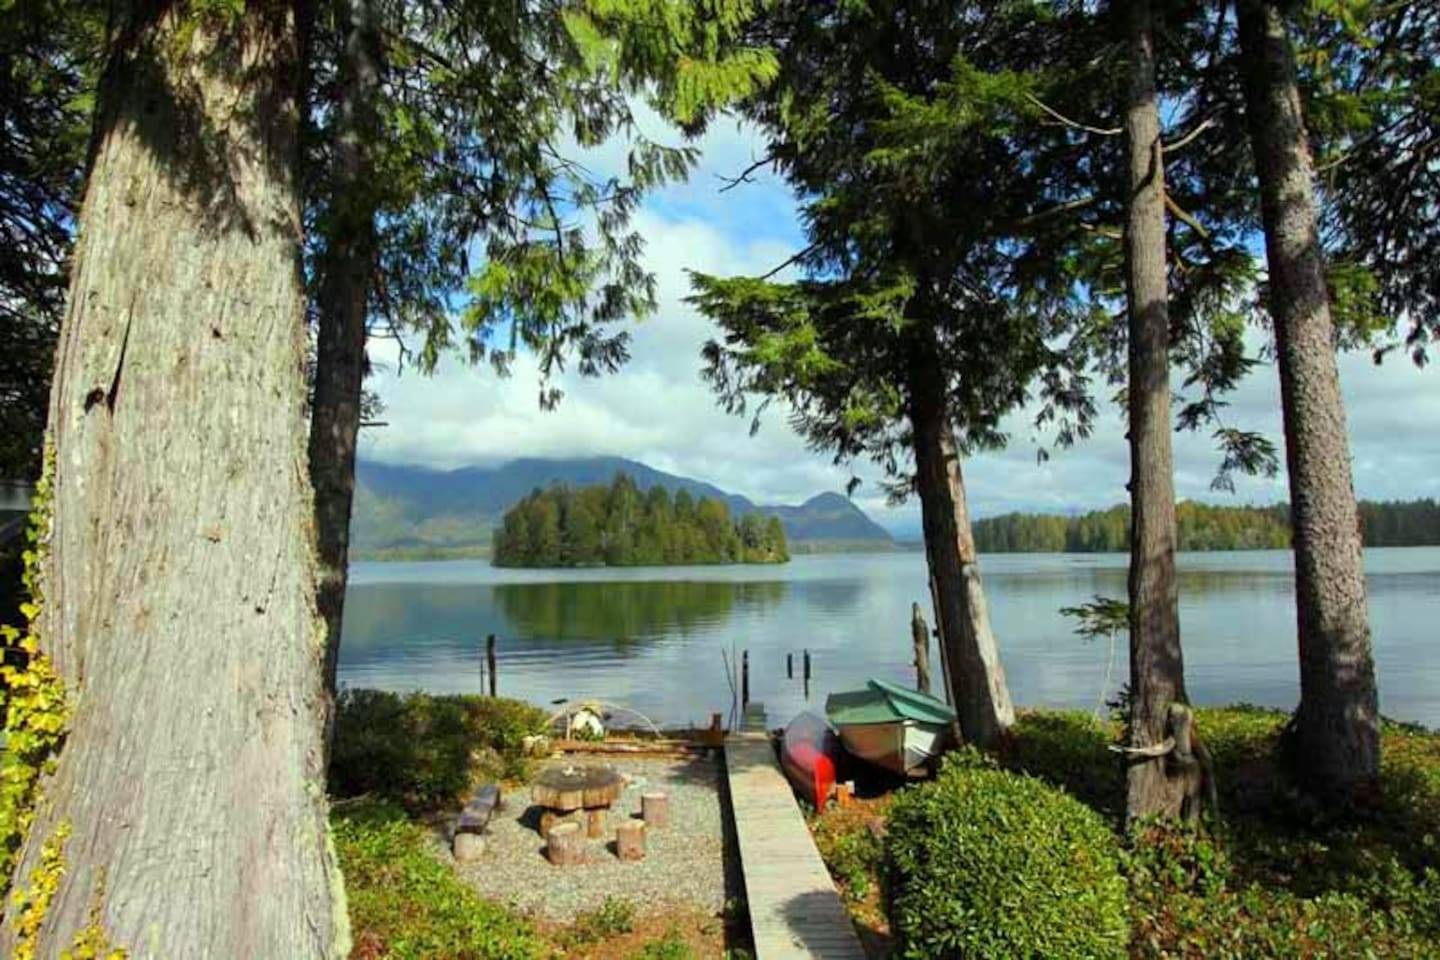 Sink into the stunning views from Cedarwood Cove deck, Tofino Ocean Inlet waters and the surrounding majestic mountains will rejuvenate and awaken your senses back to nature.